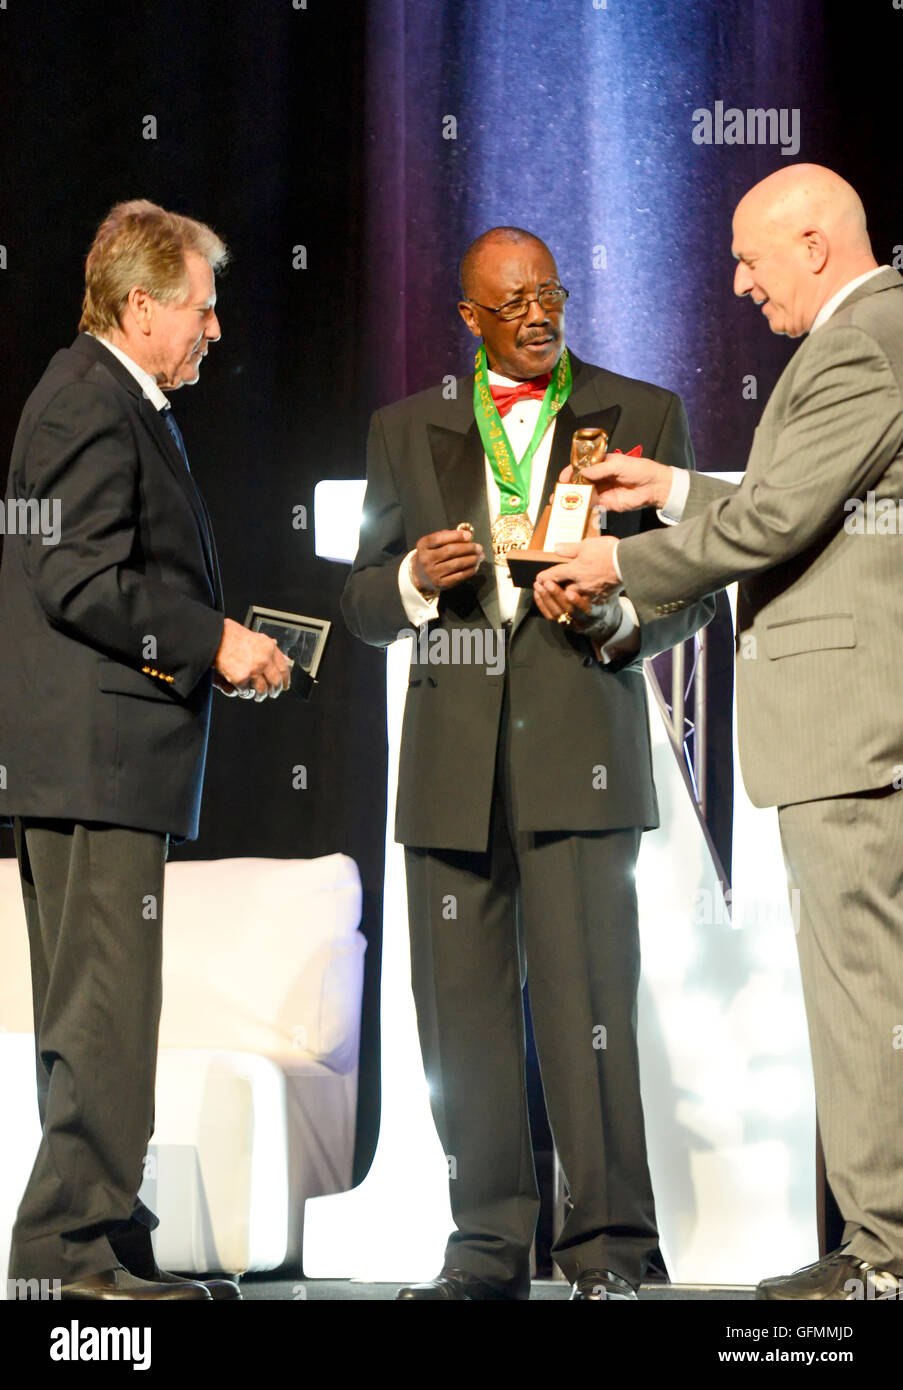 Las Vegas, Nevada, USA. 30th July, 2016. Thell Torrence honored at the 4th Annual Nevada Boxing Hall of Fame Induction - Stock Image